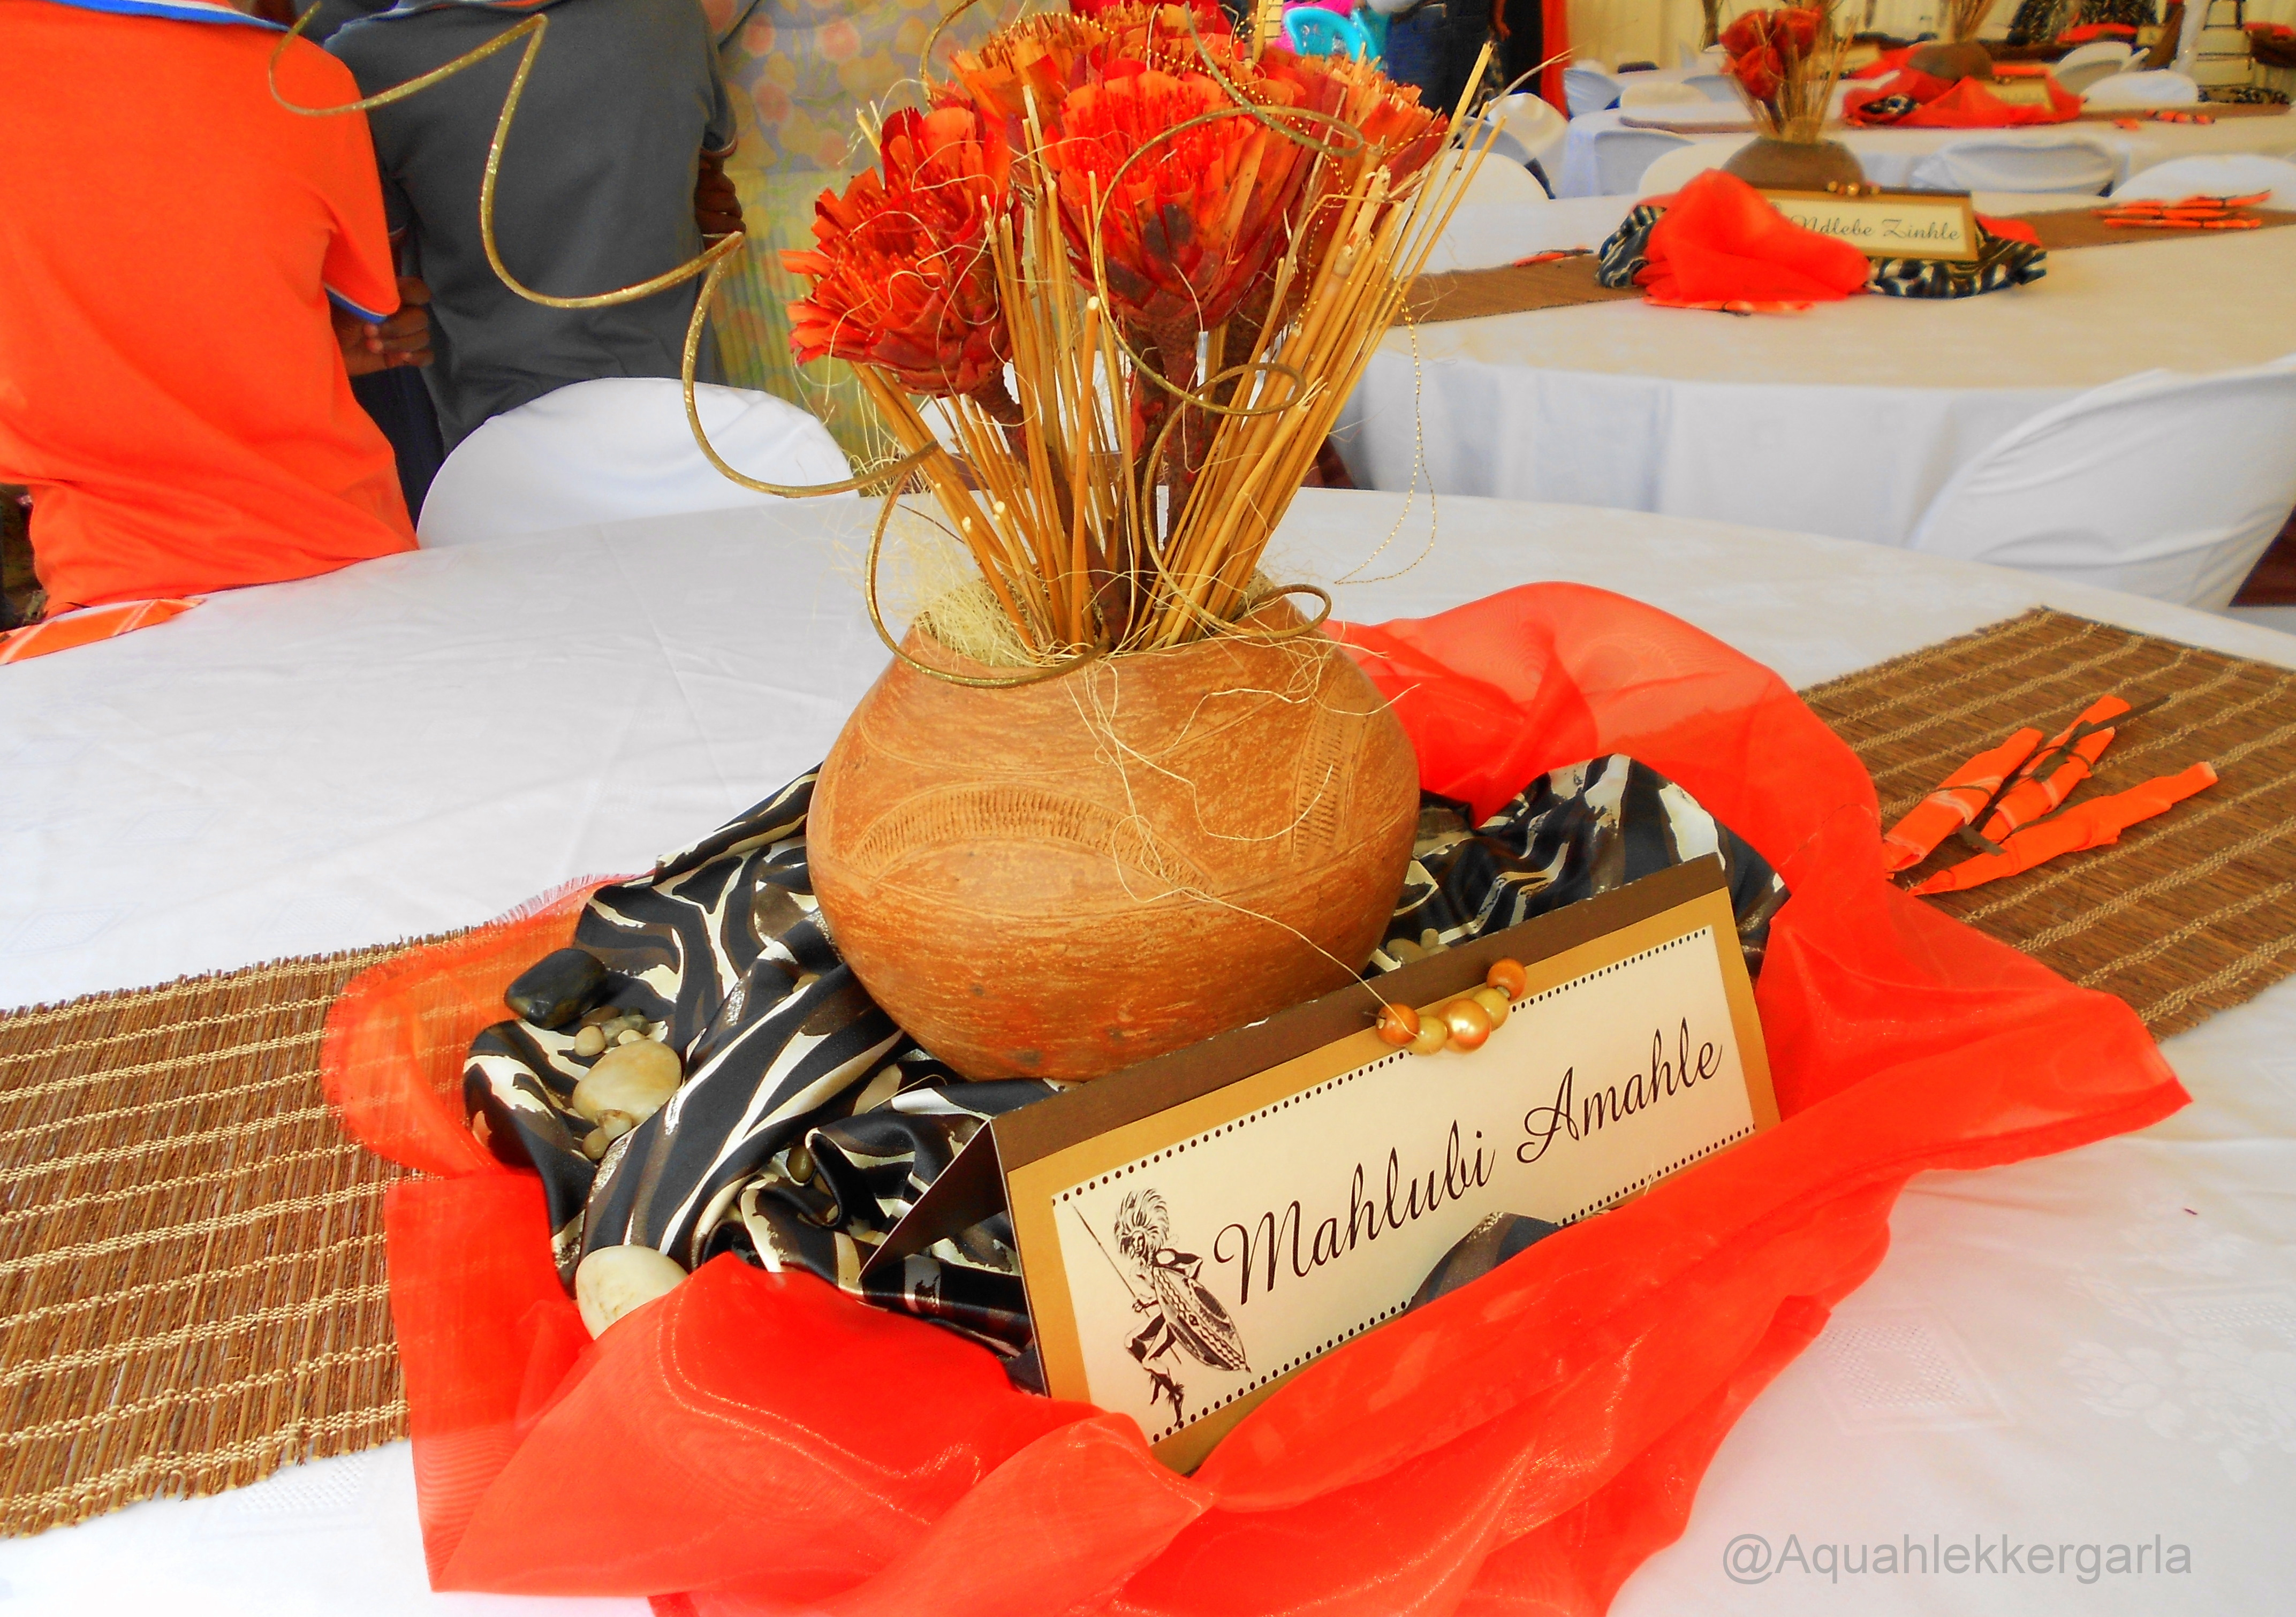 Wedding decor ideas in south africa gallery wedding dress traditional tswana wedding decorations traditional wedding decor traditional tswana wedding decorations junglespirit gallery junglespirit Image collections